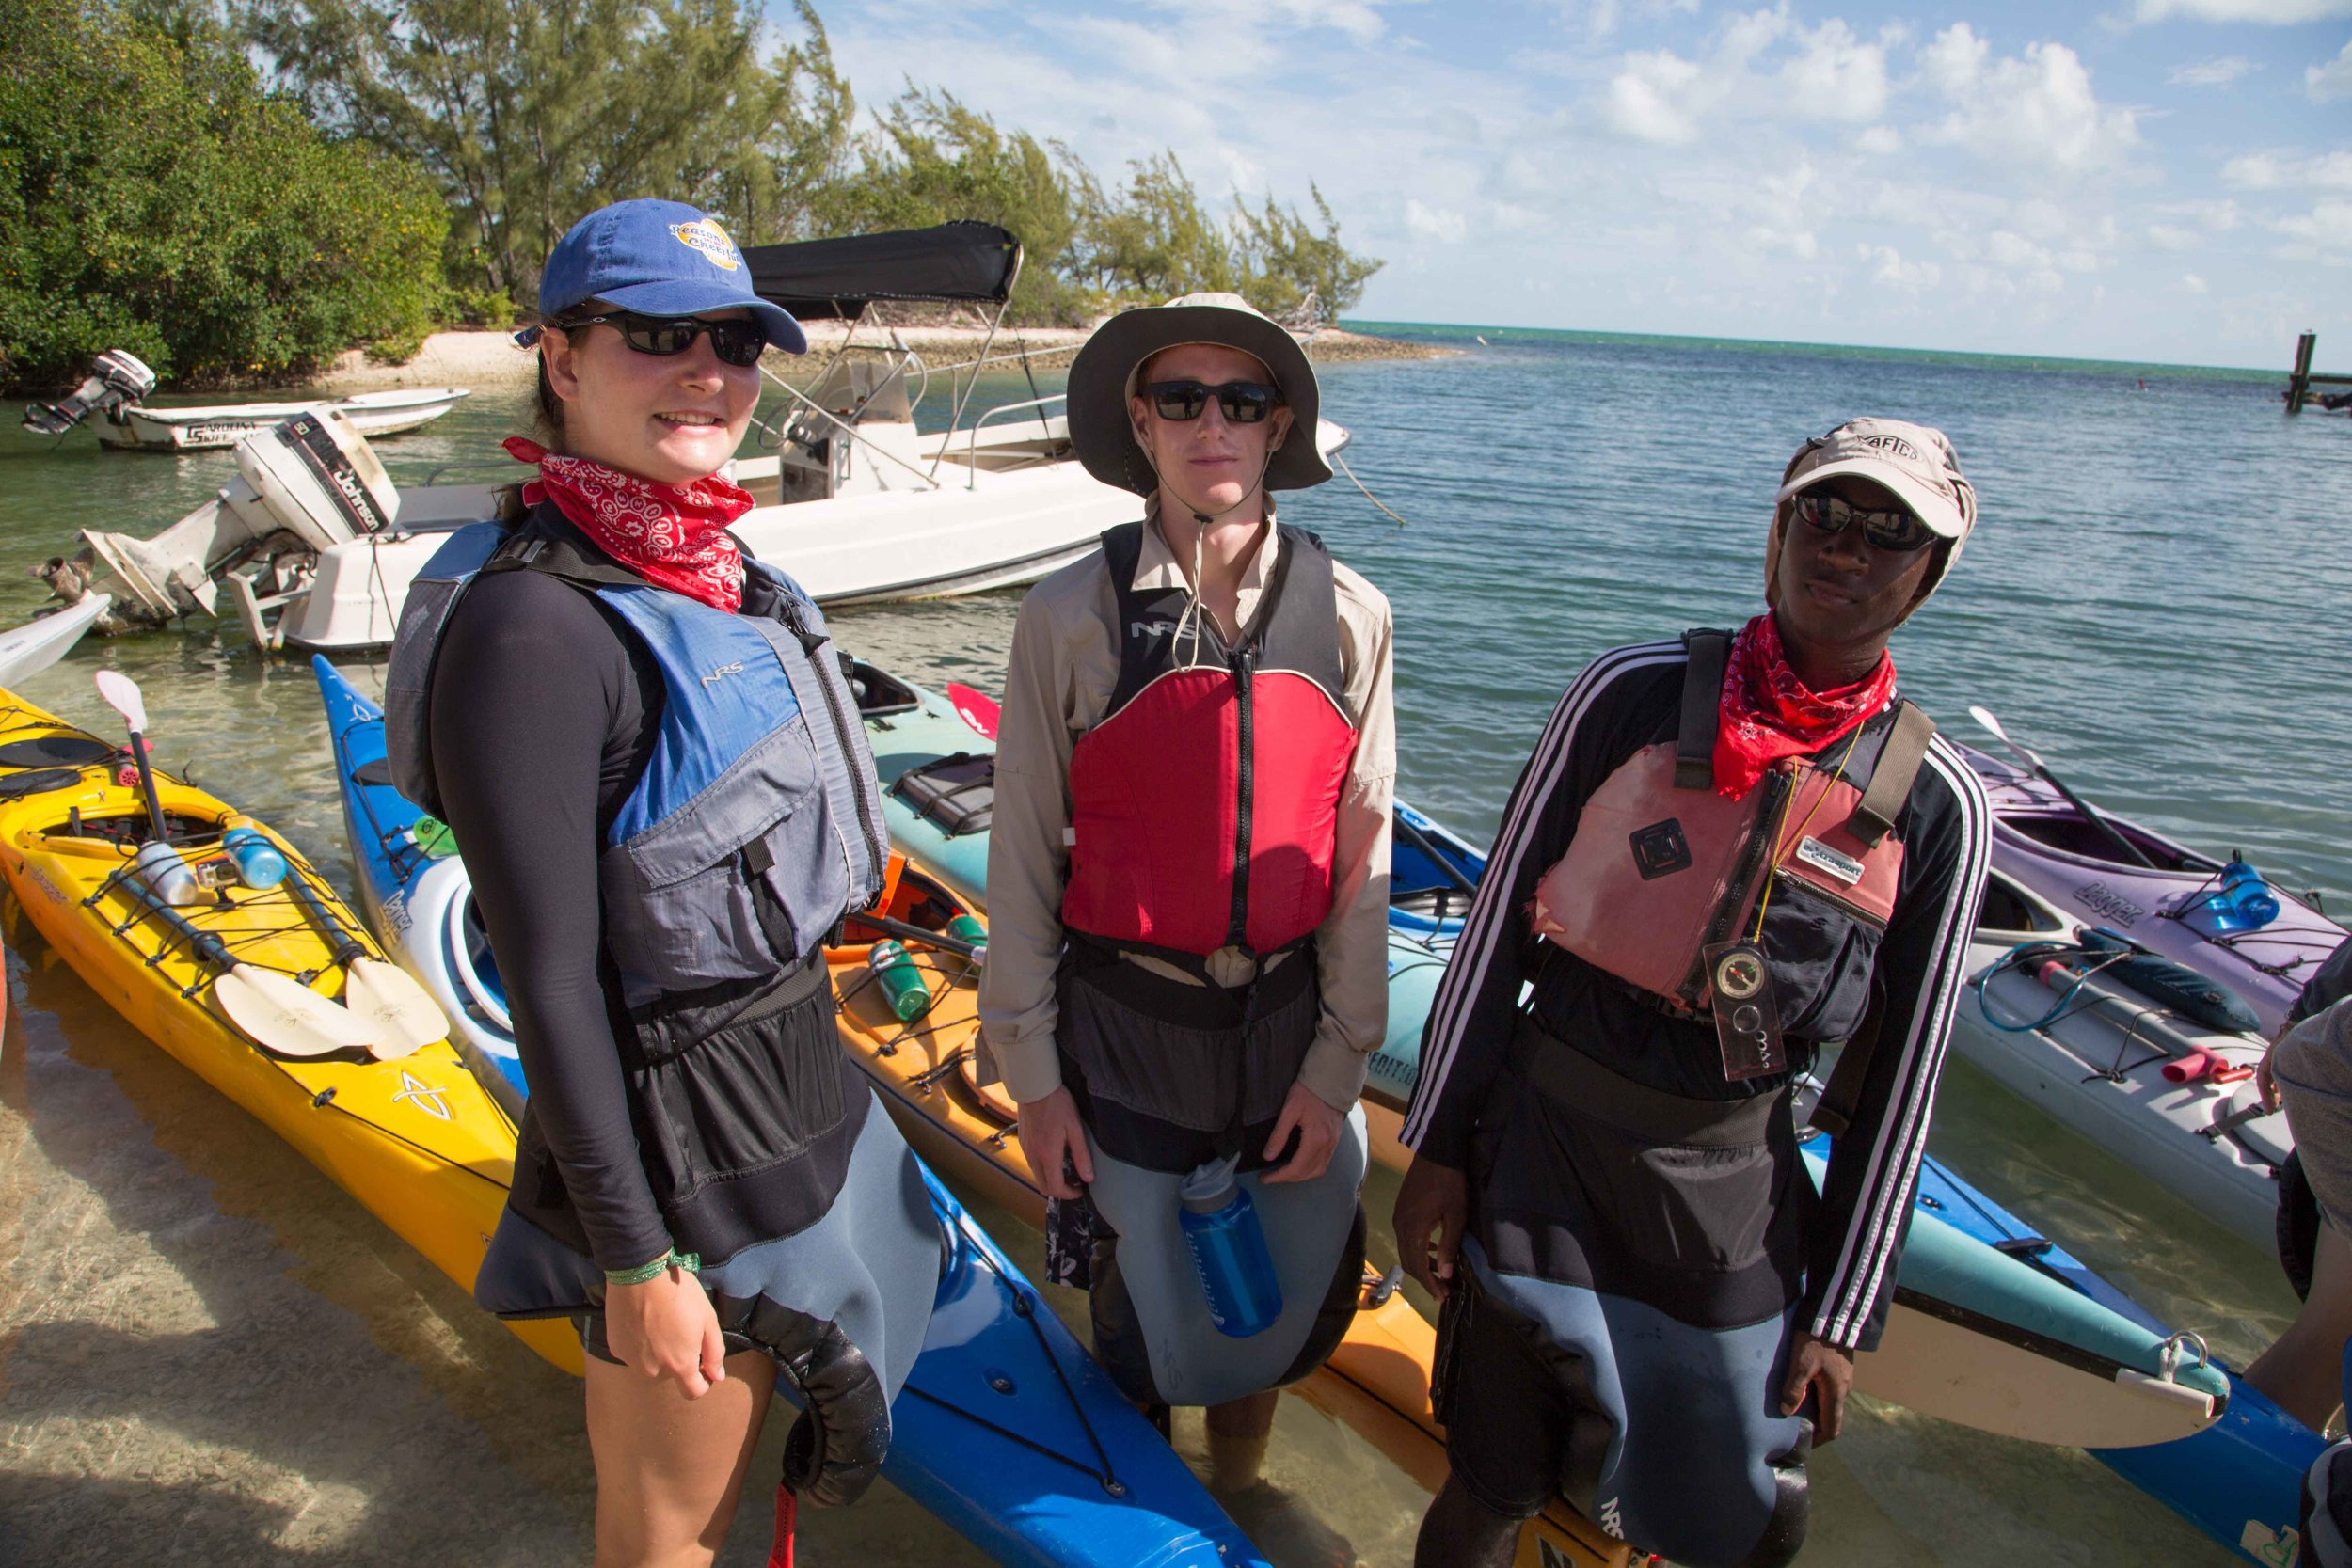 Kerwin, Ellie and Peter K. take a moment to pose for a photo before heading out on their kayak trip.